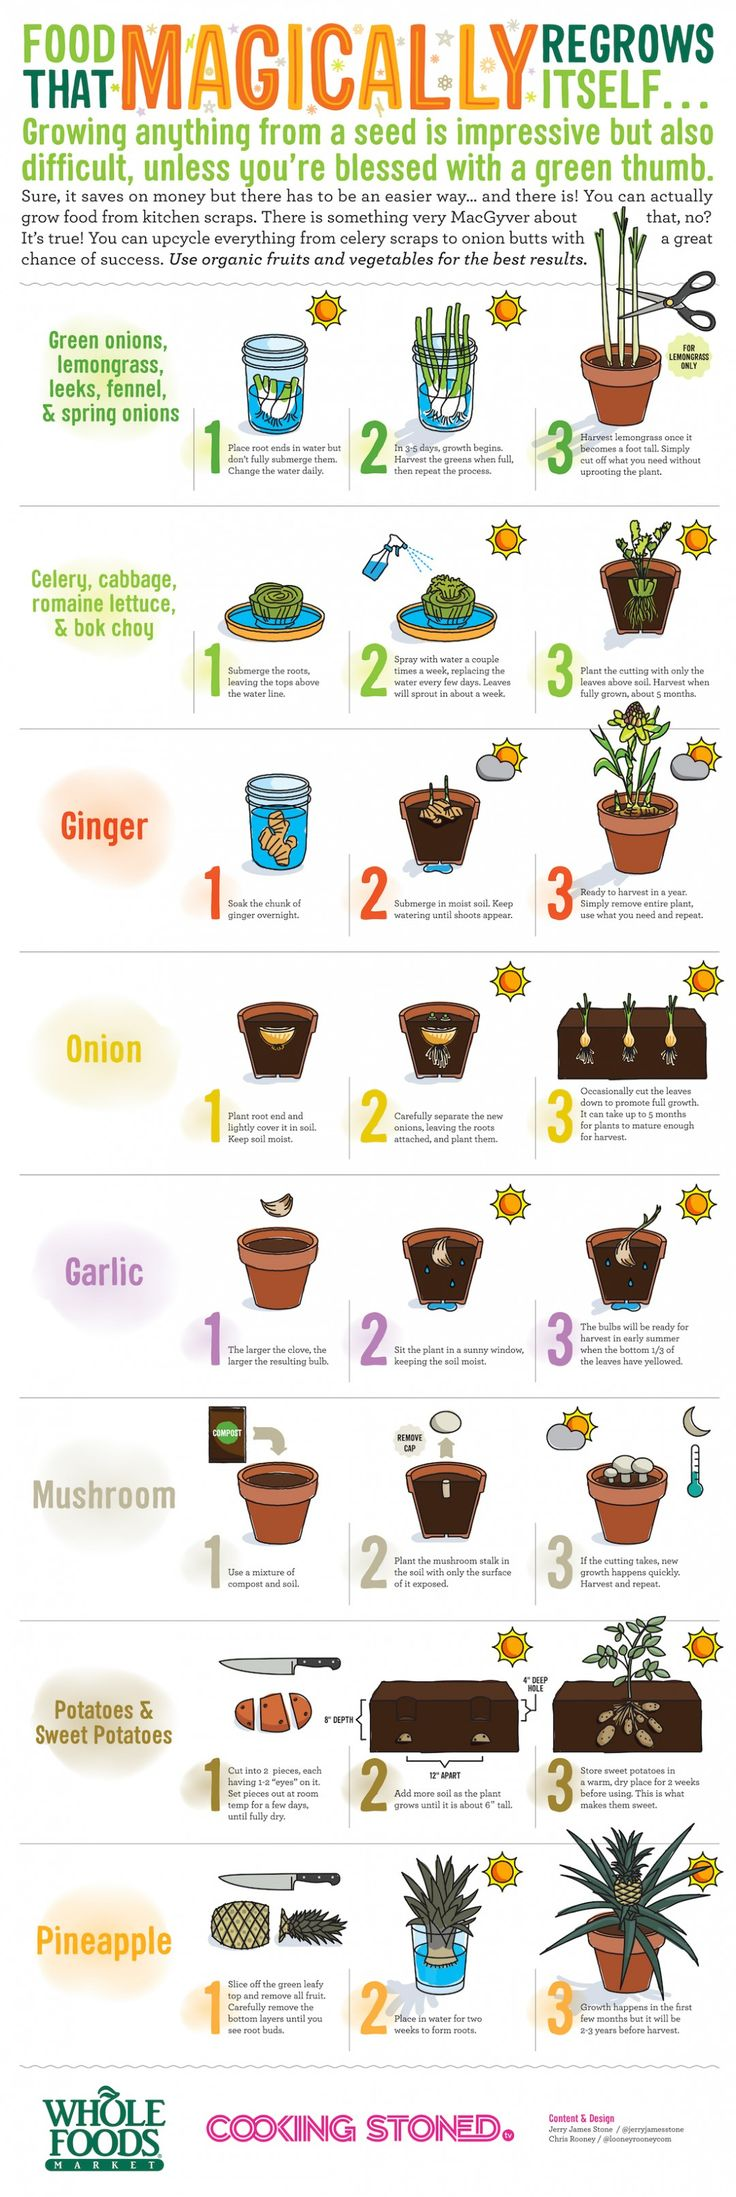 1000+ ideas about Regrow Vegetables on Pinterest.